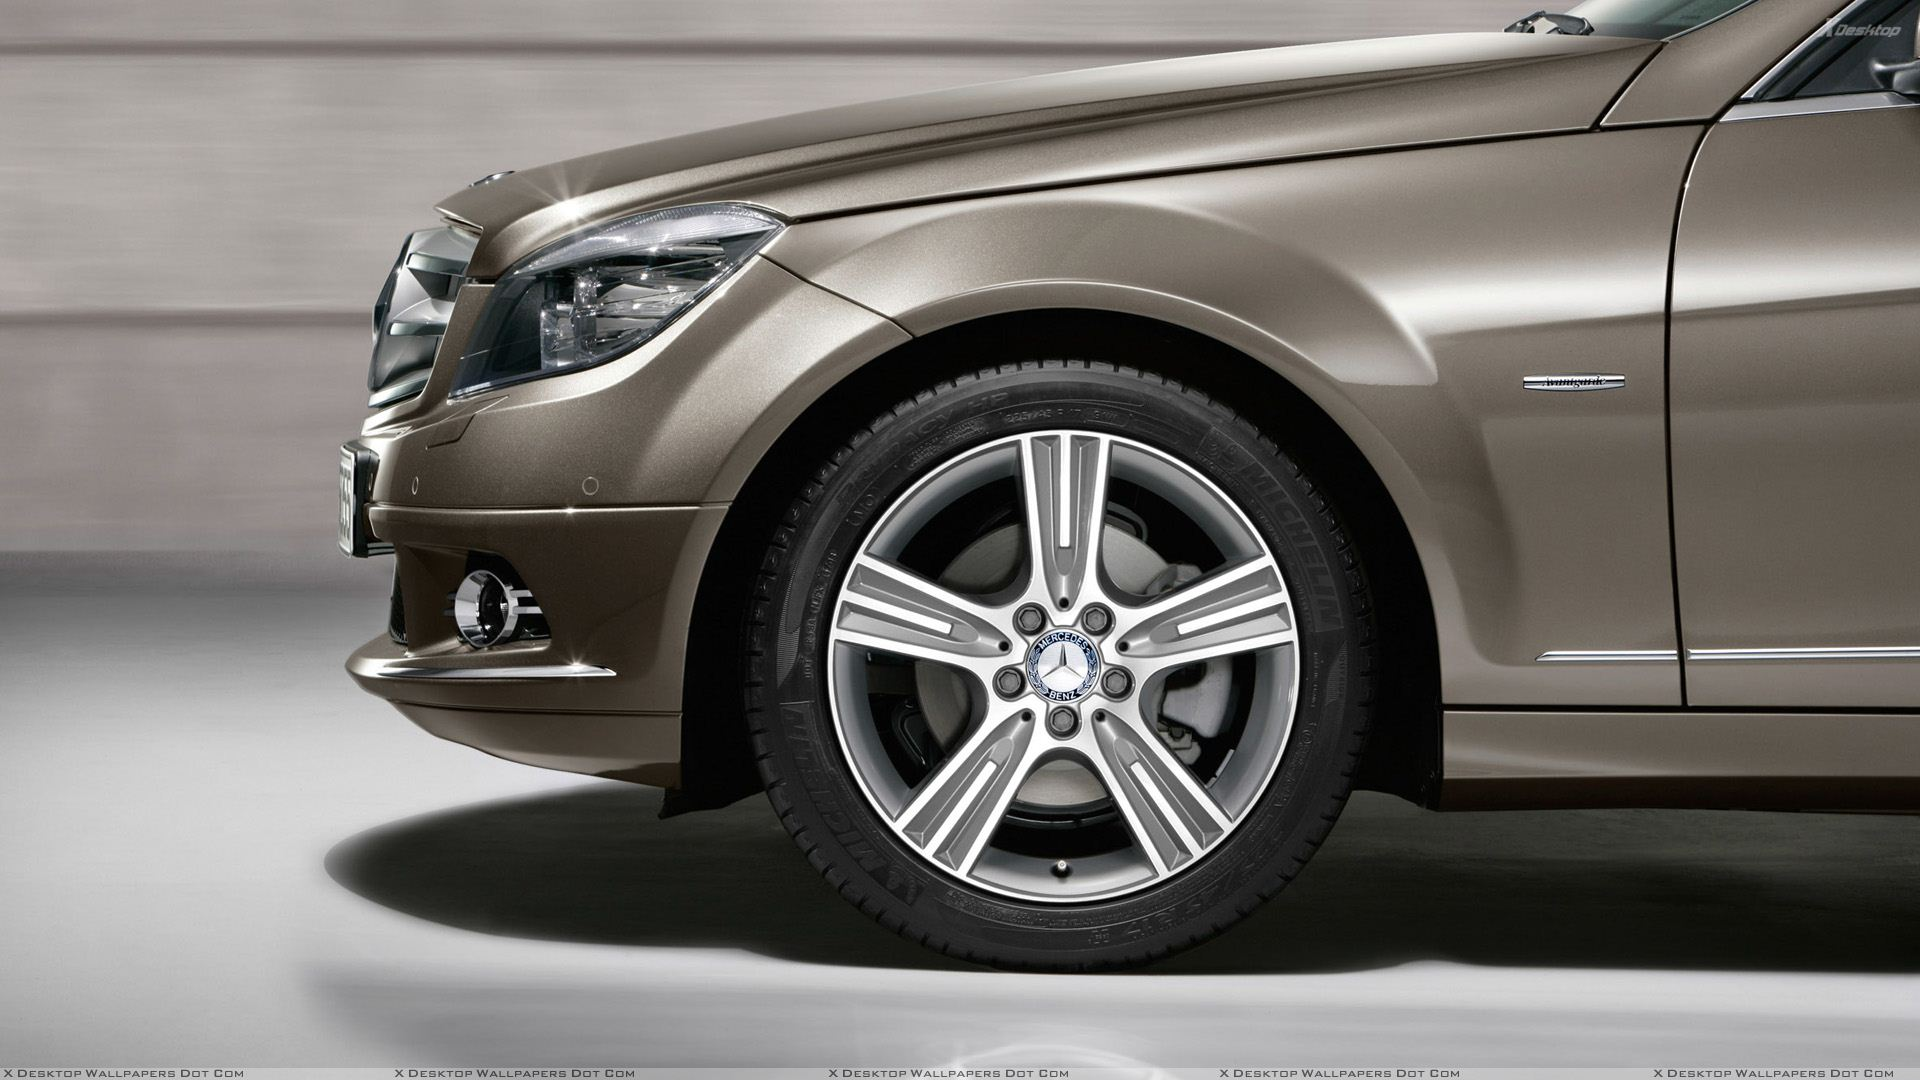 Mercedes benz wallpapers photos images in hd for Mercedes benz tyres